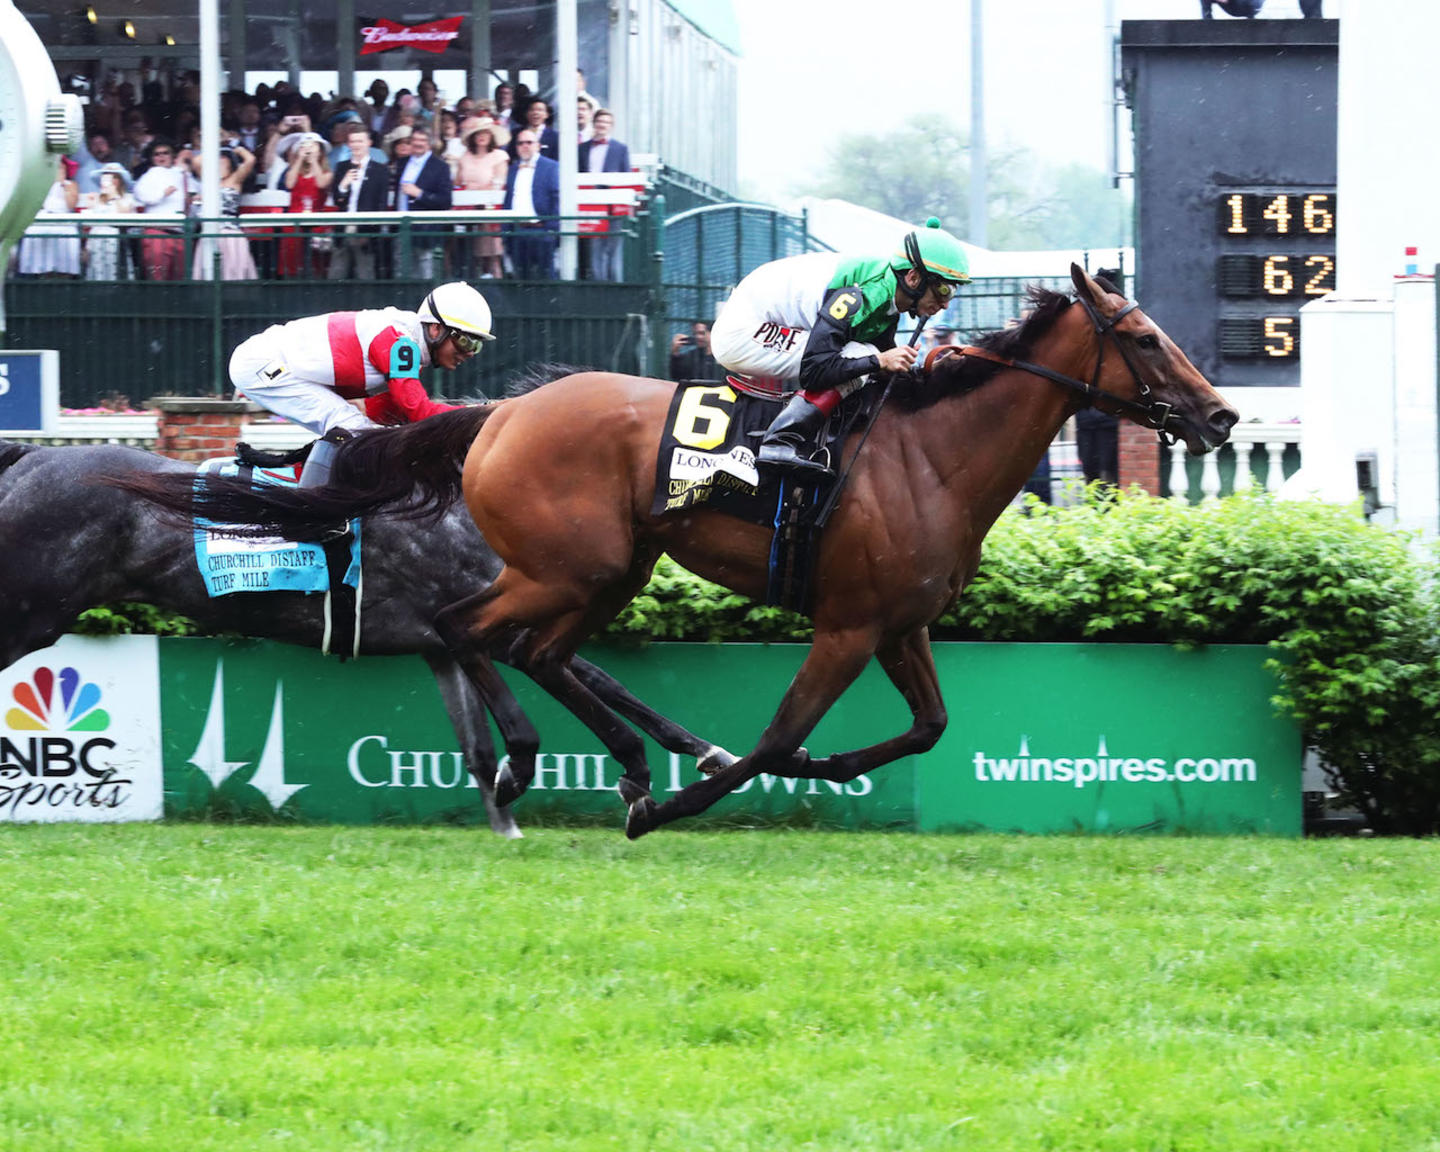 PROCTOR'S LEDGE - The Longines Churchill Distaff Turf Mile G2 - 33rd Running - 05-05-18 - R07 - CD - Finish 01